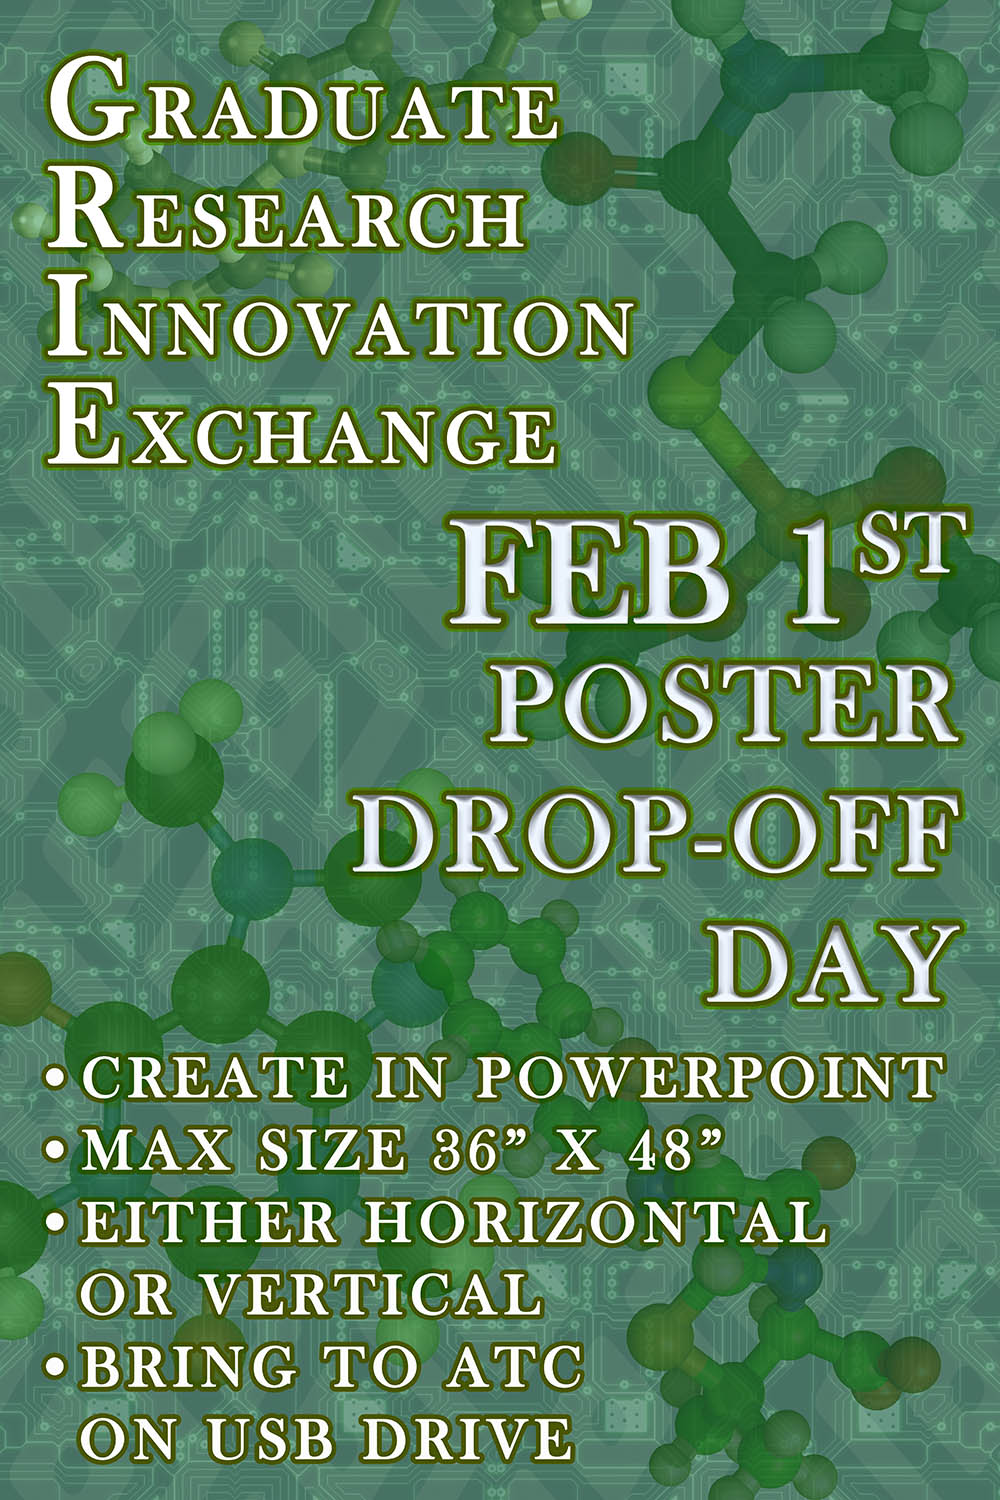 GRIE 2018 Poster Drop-Off Day Announcement